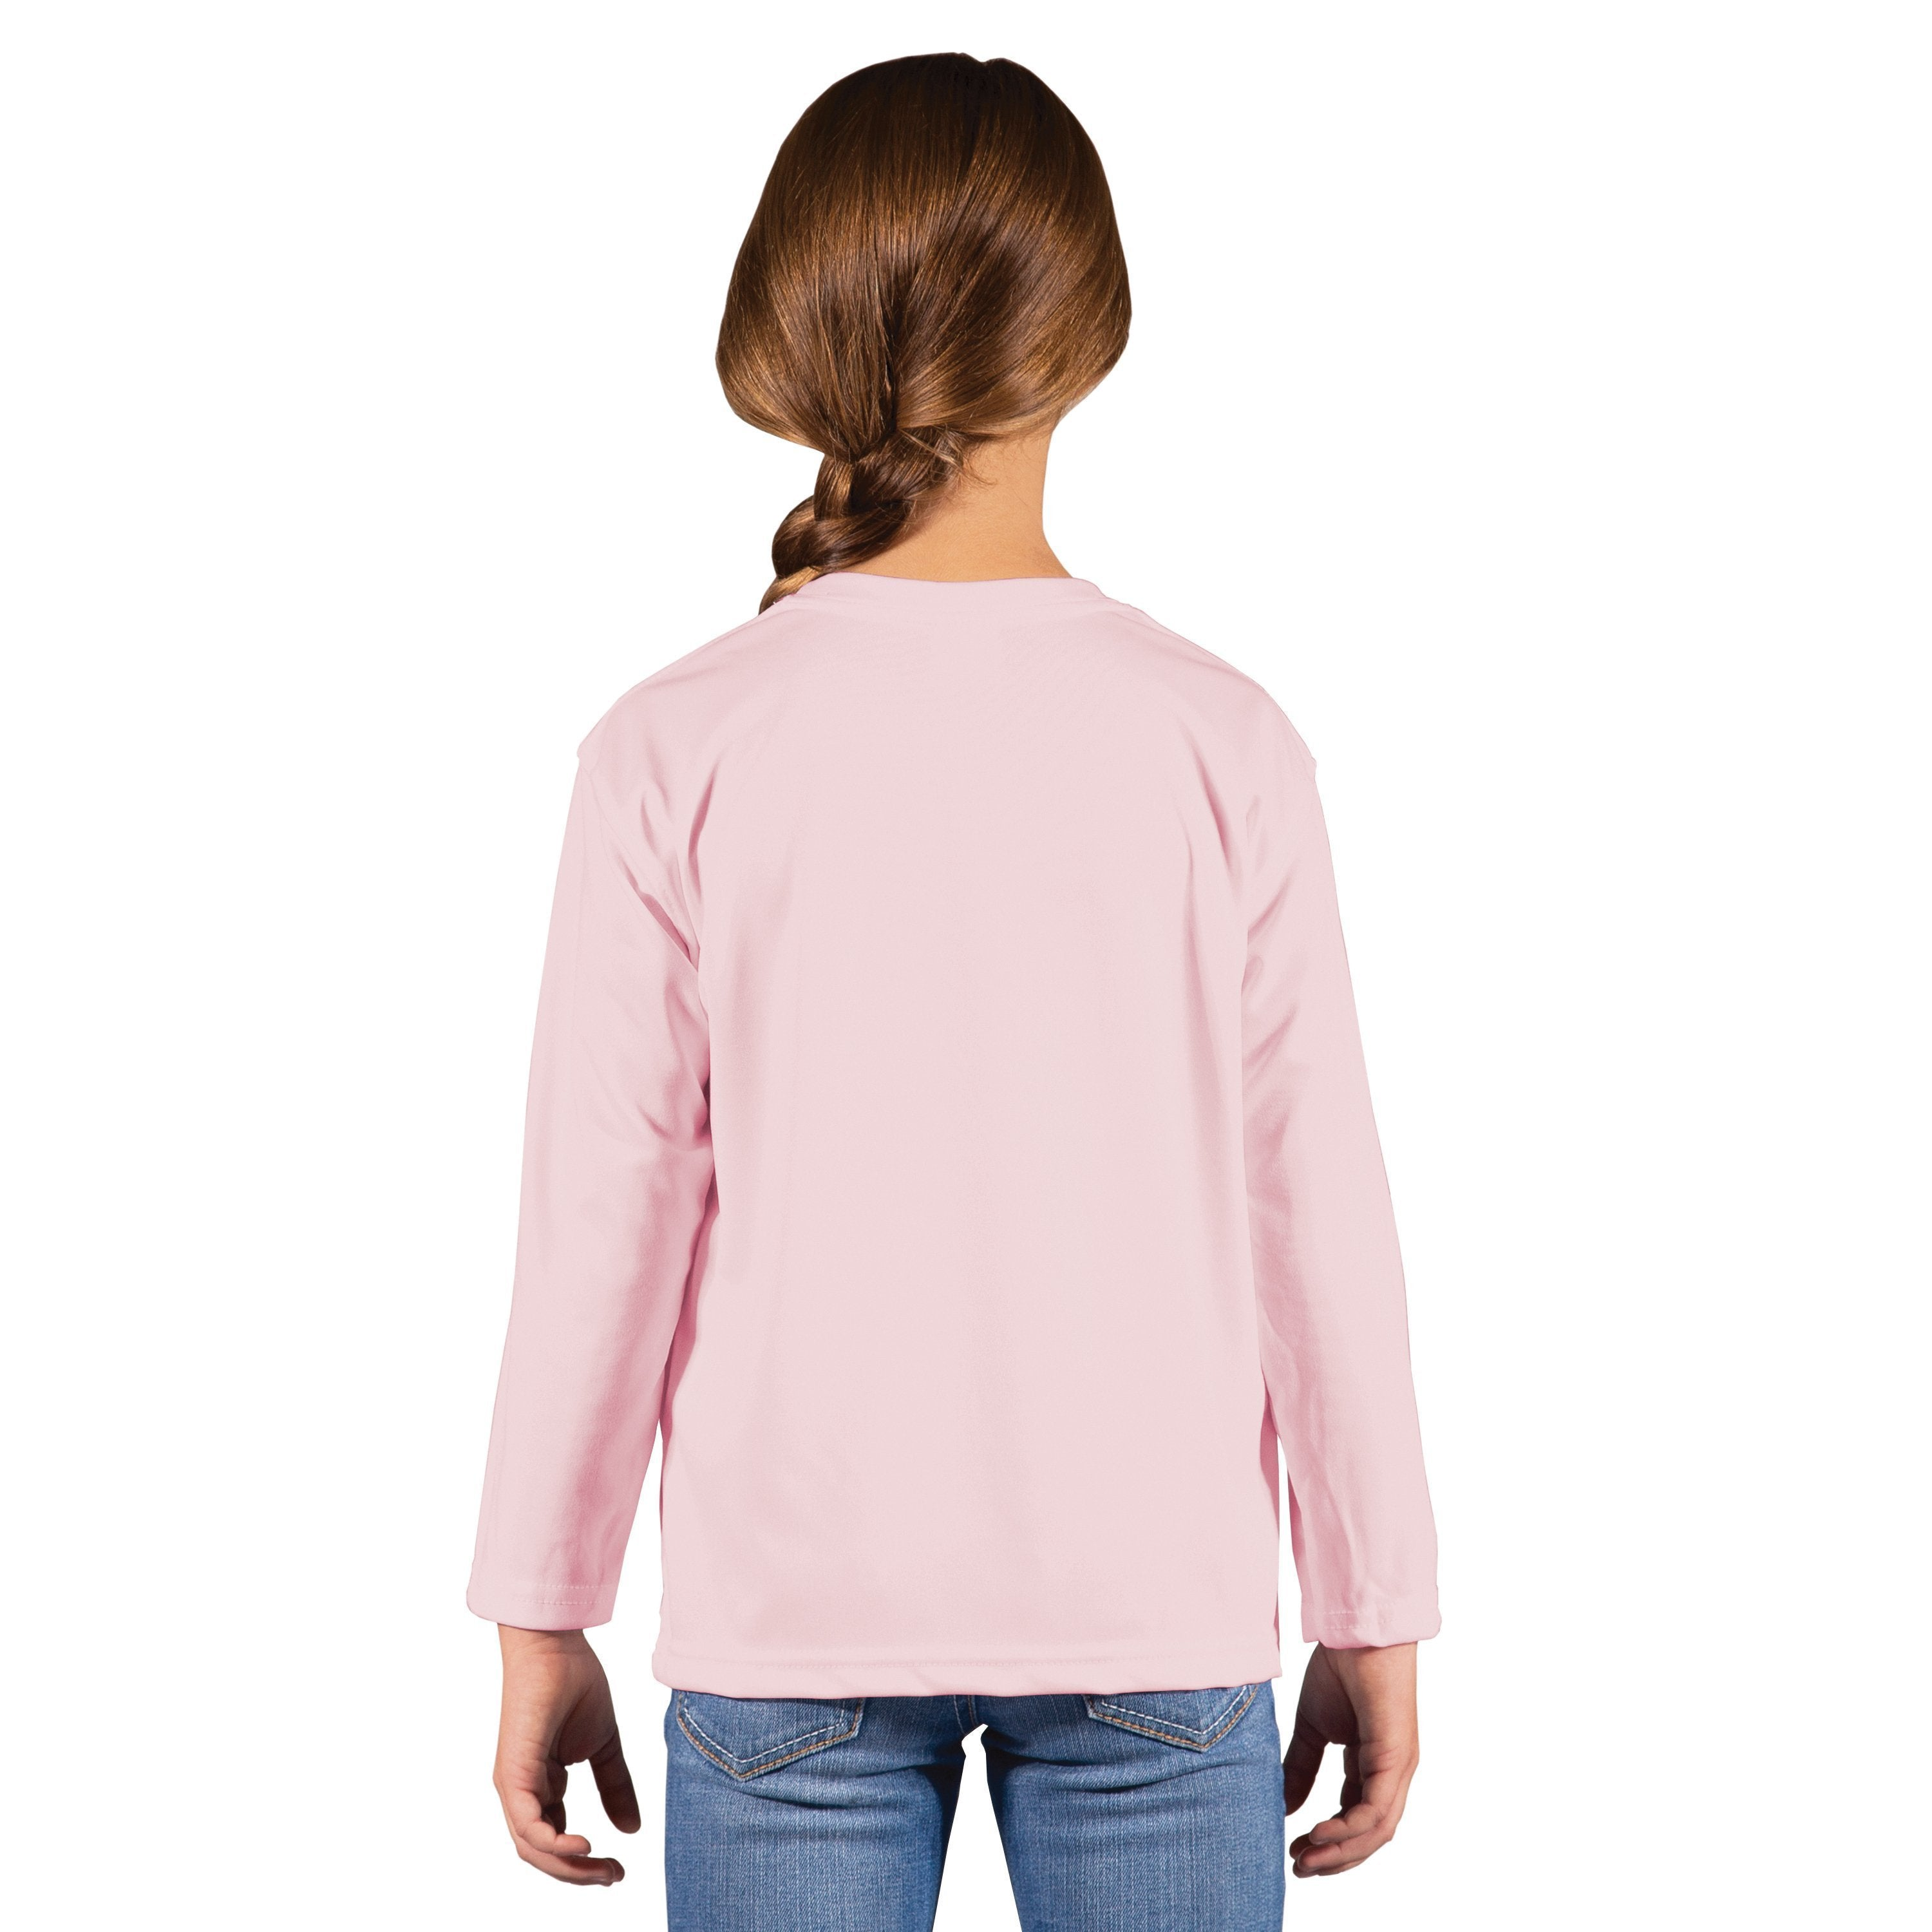 M780PB Youth Solar Long Sleeve - Pink Blossom